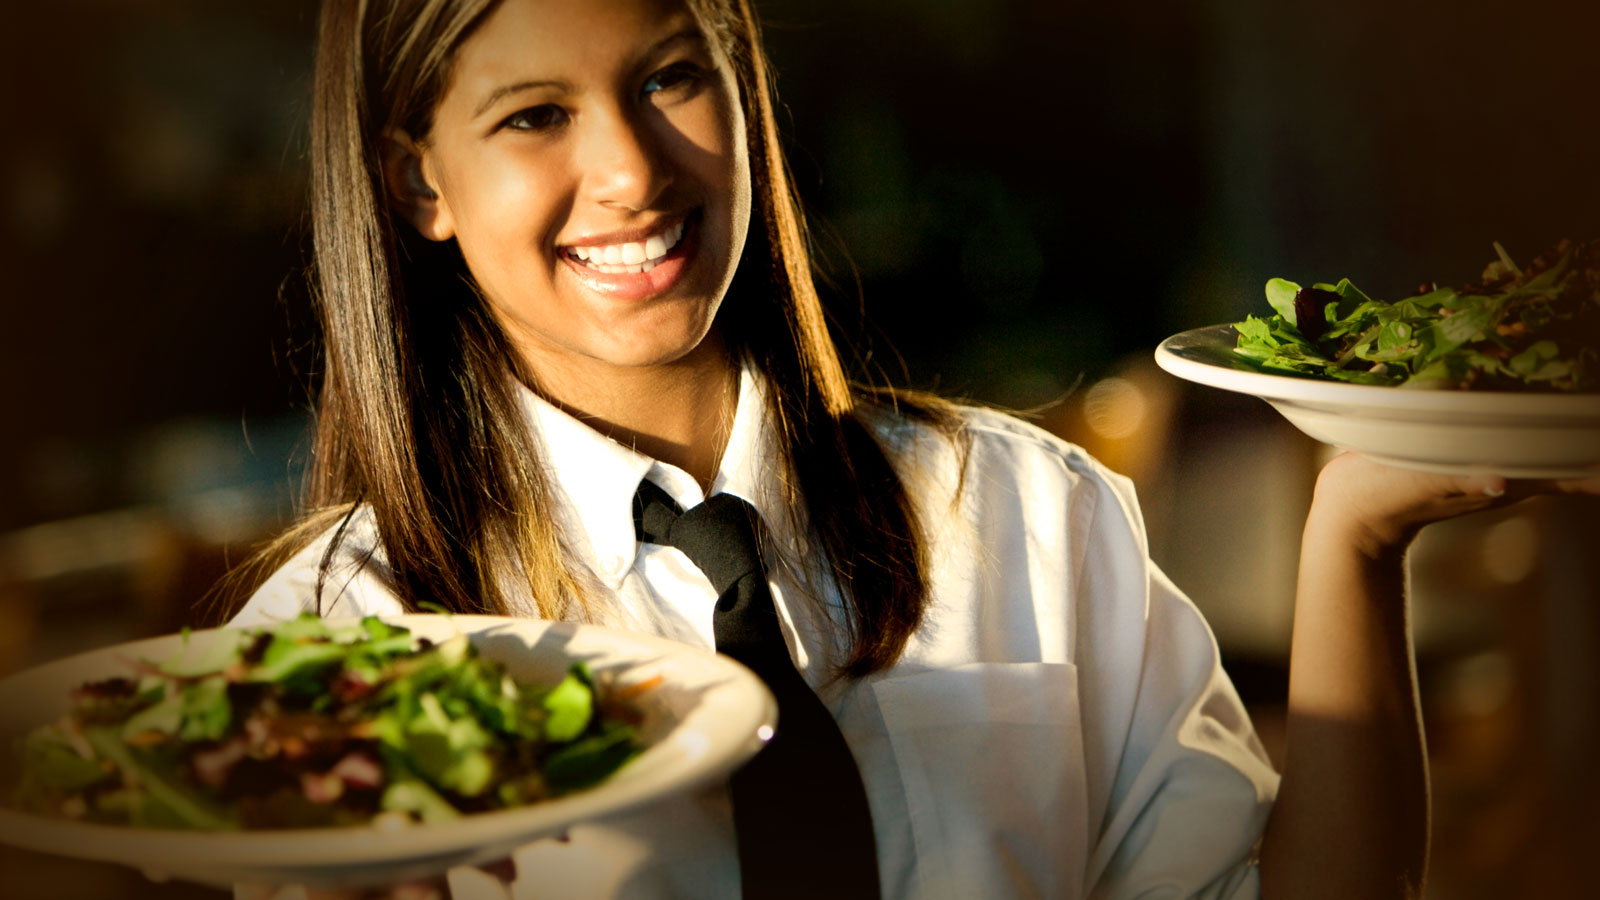 A waitress holds two plates of salad.